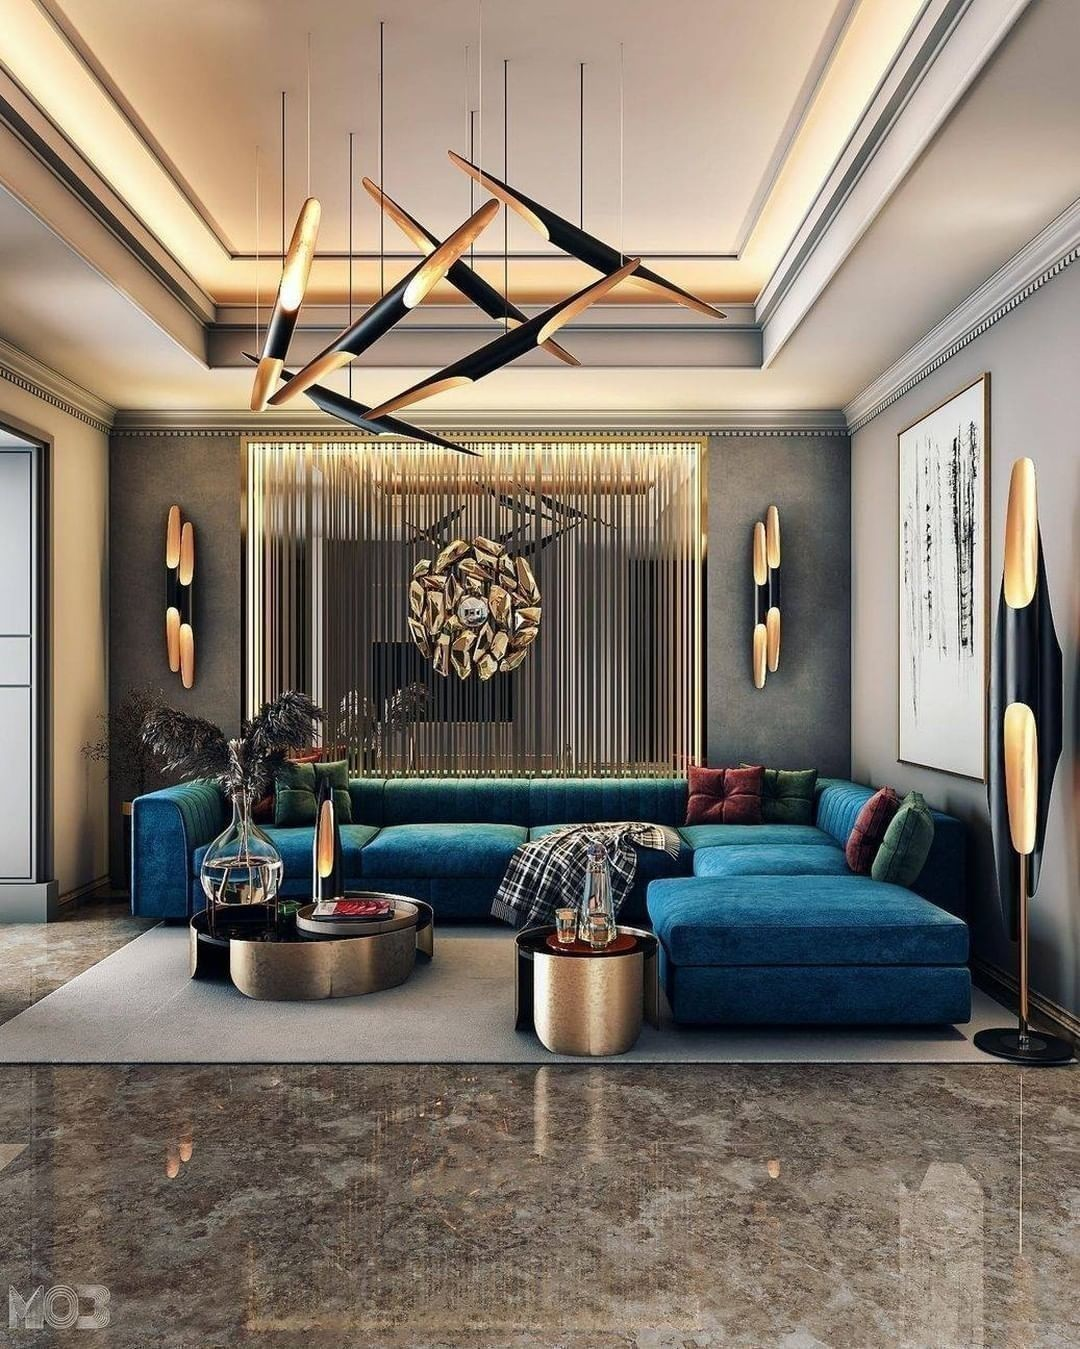 Discover The Most Exquisite Room By Room Inspirations With Luxxu